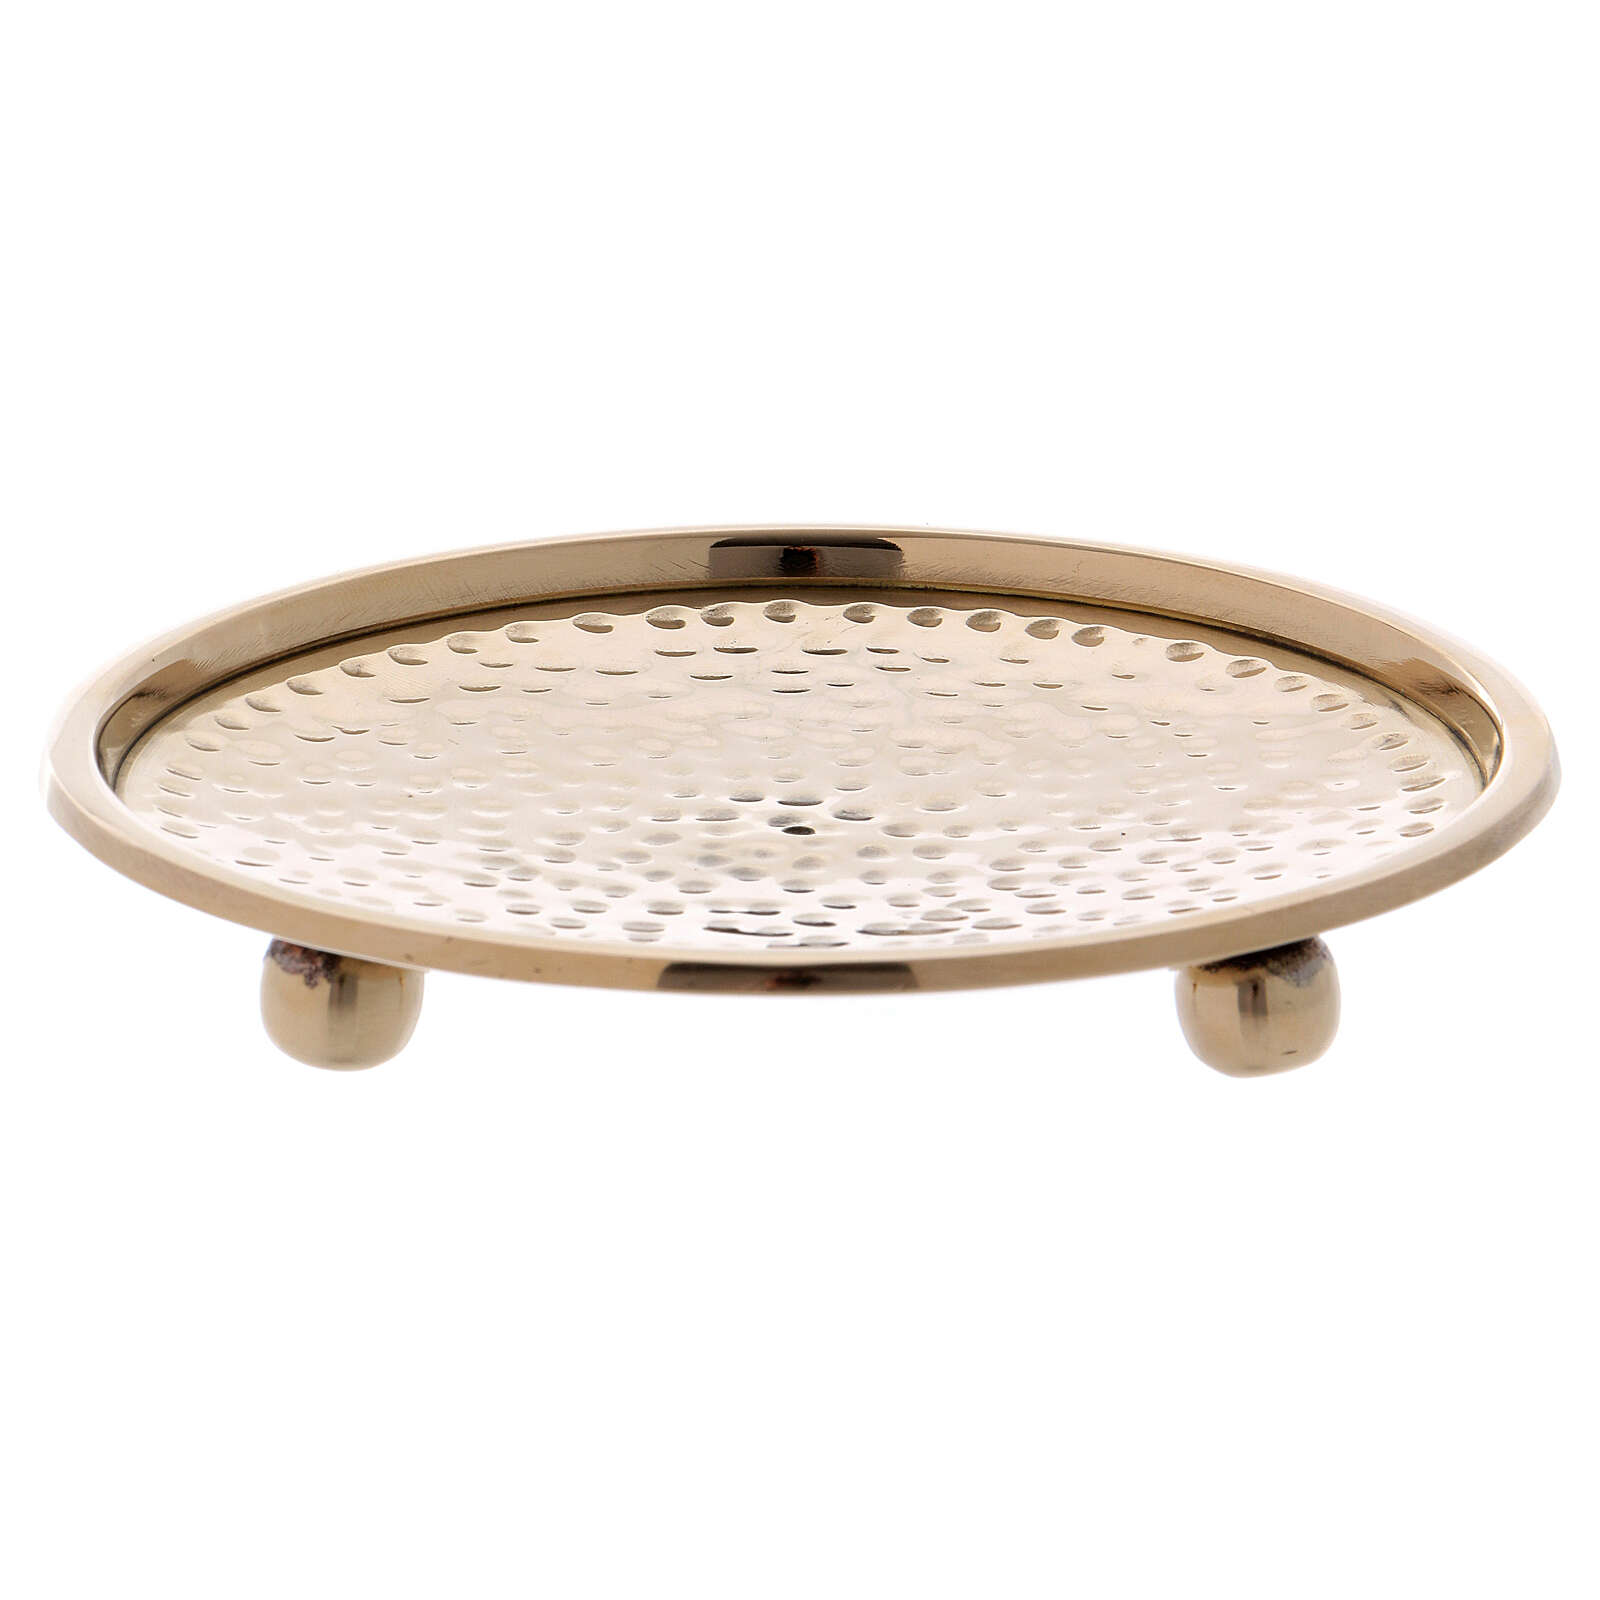 Hammered candle holder plate in gold plated brass 4 in 3